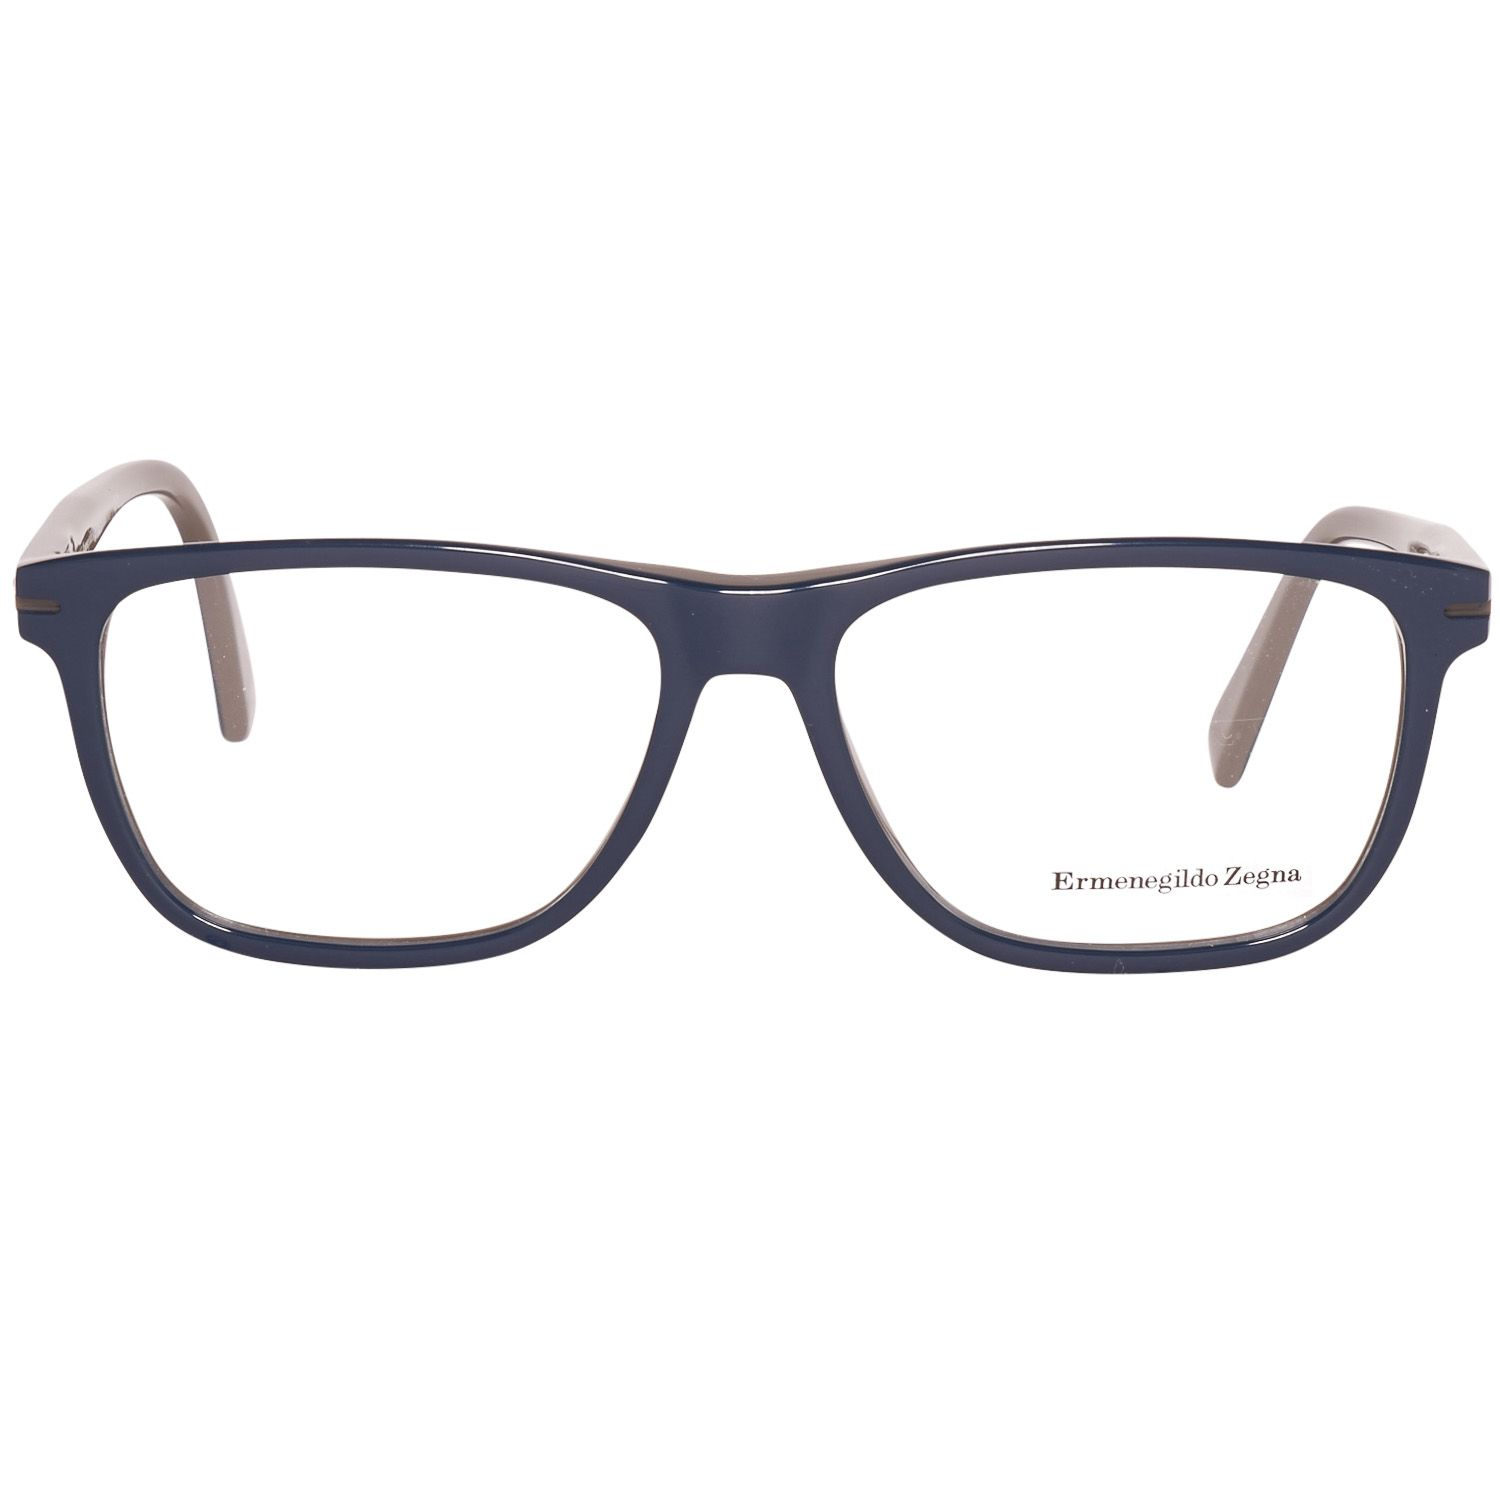 Ermenegildo Zegna Optical Frame EZ5044 092 55 Men Blue